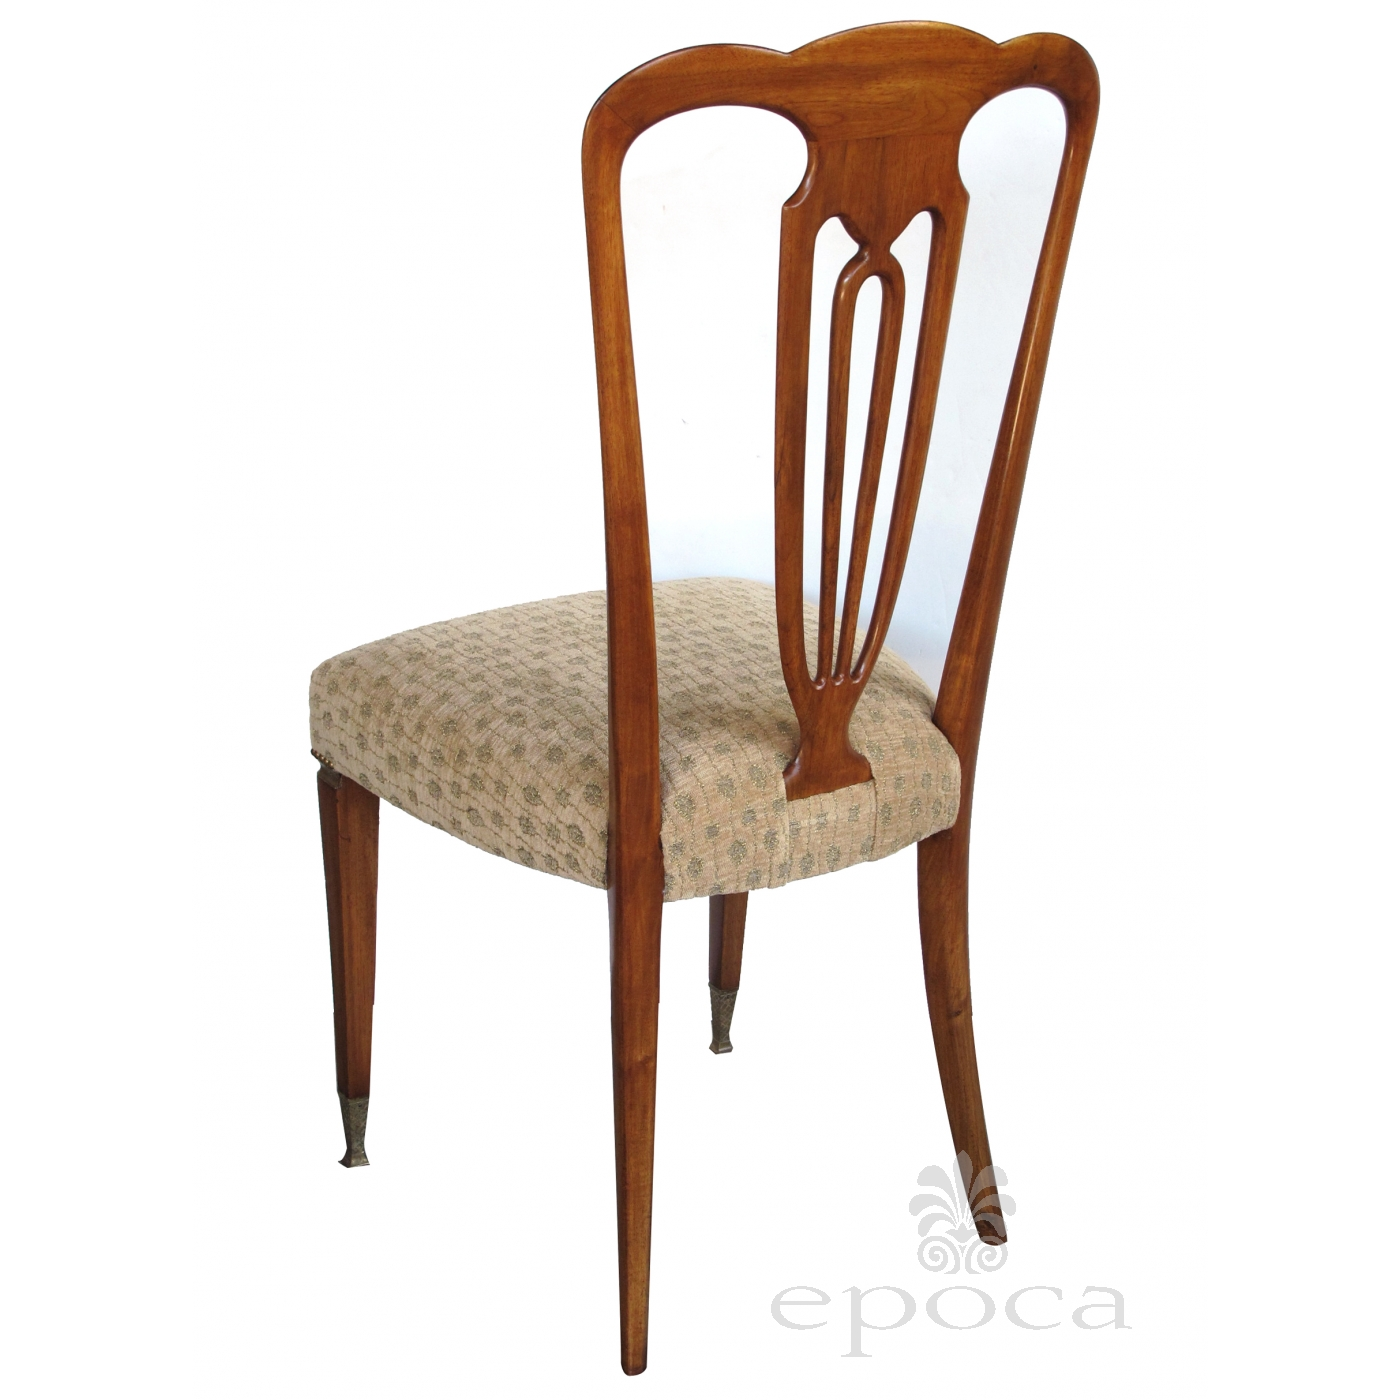 A Stylish Set Of 8 Italian 1940 S Pear Wood Shield Back Dining Chairs By Emo